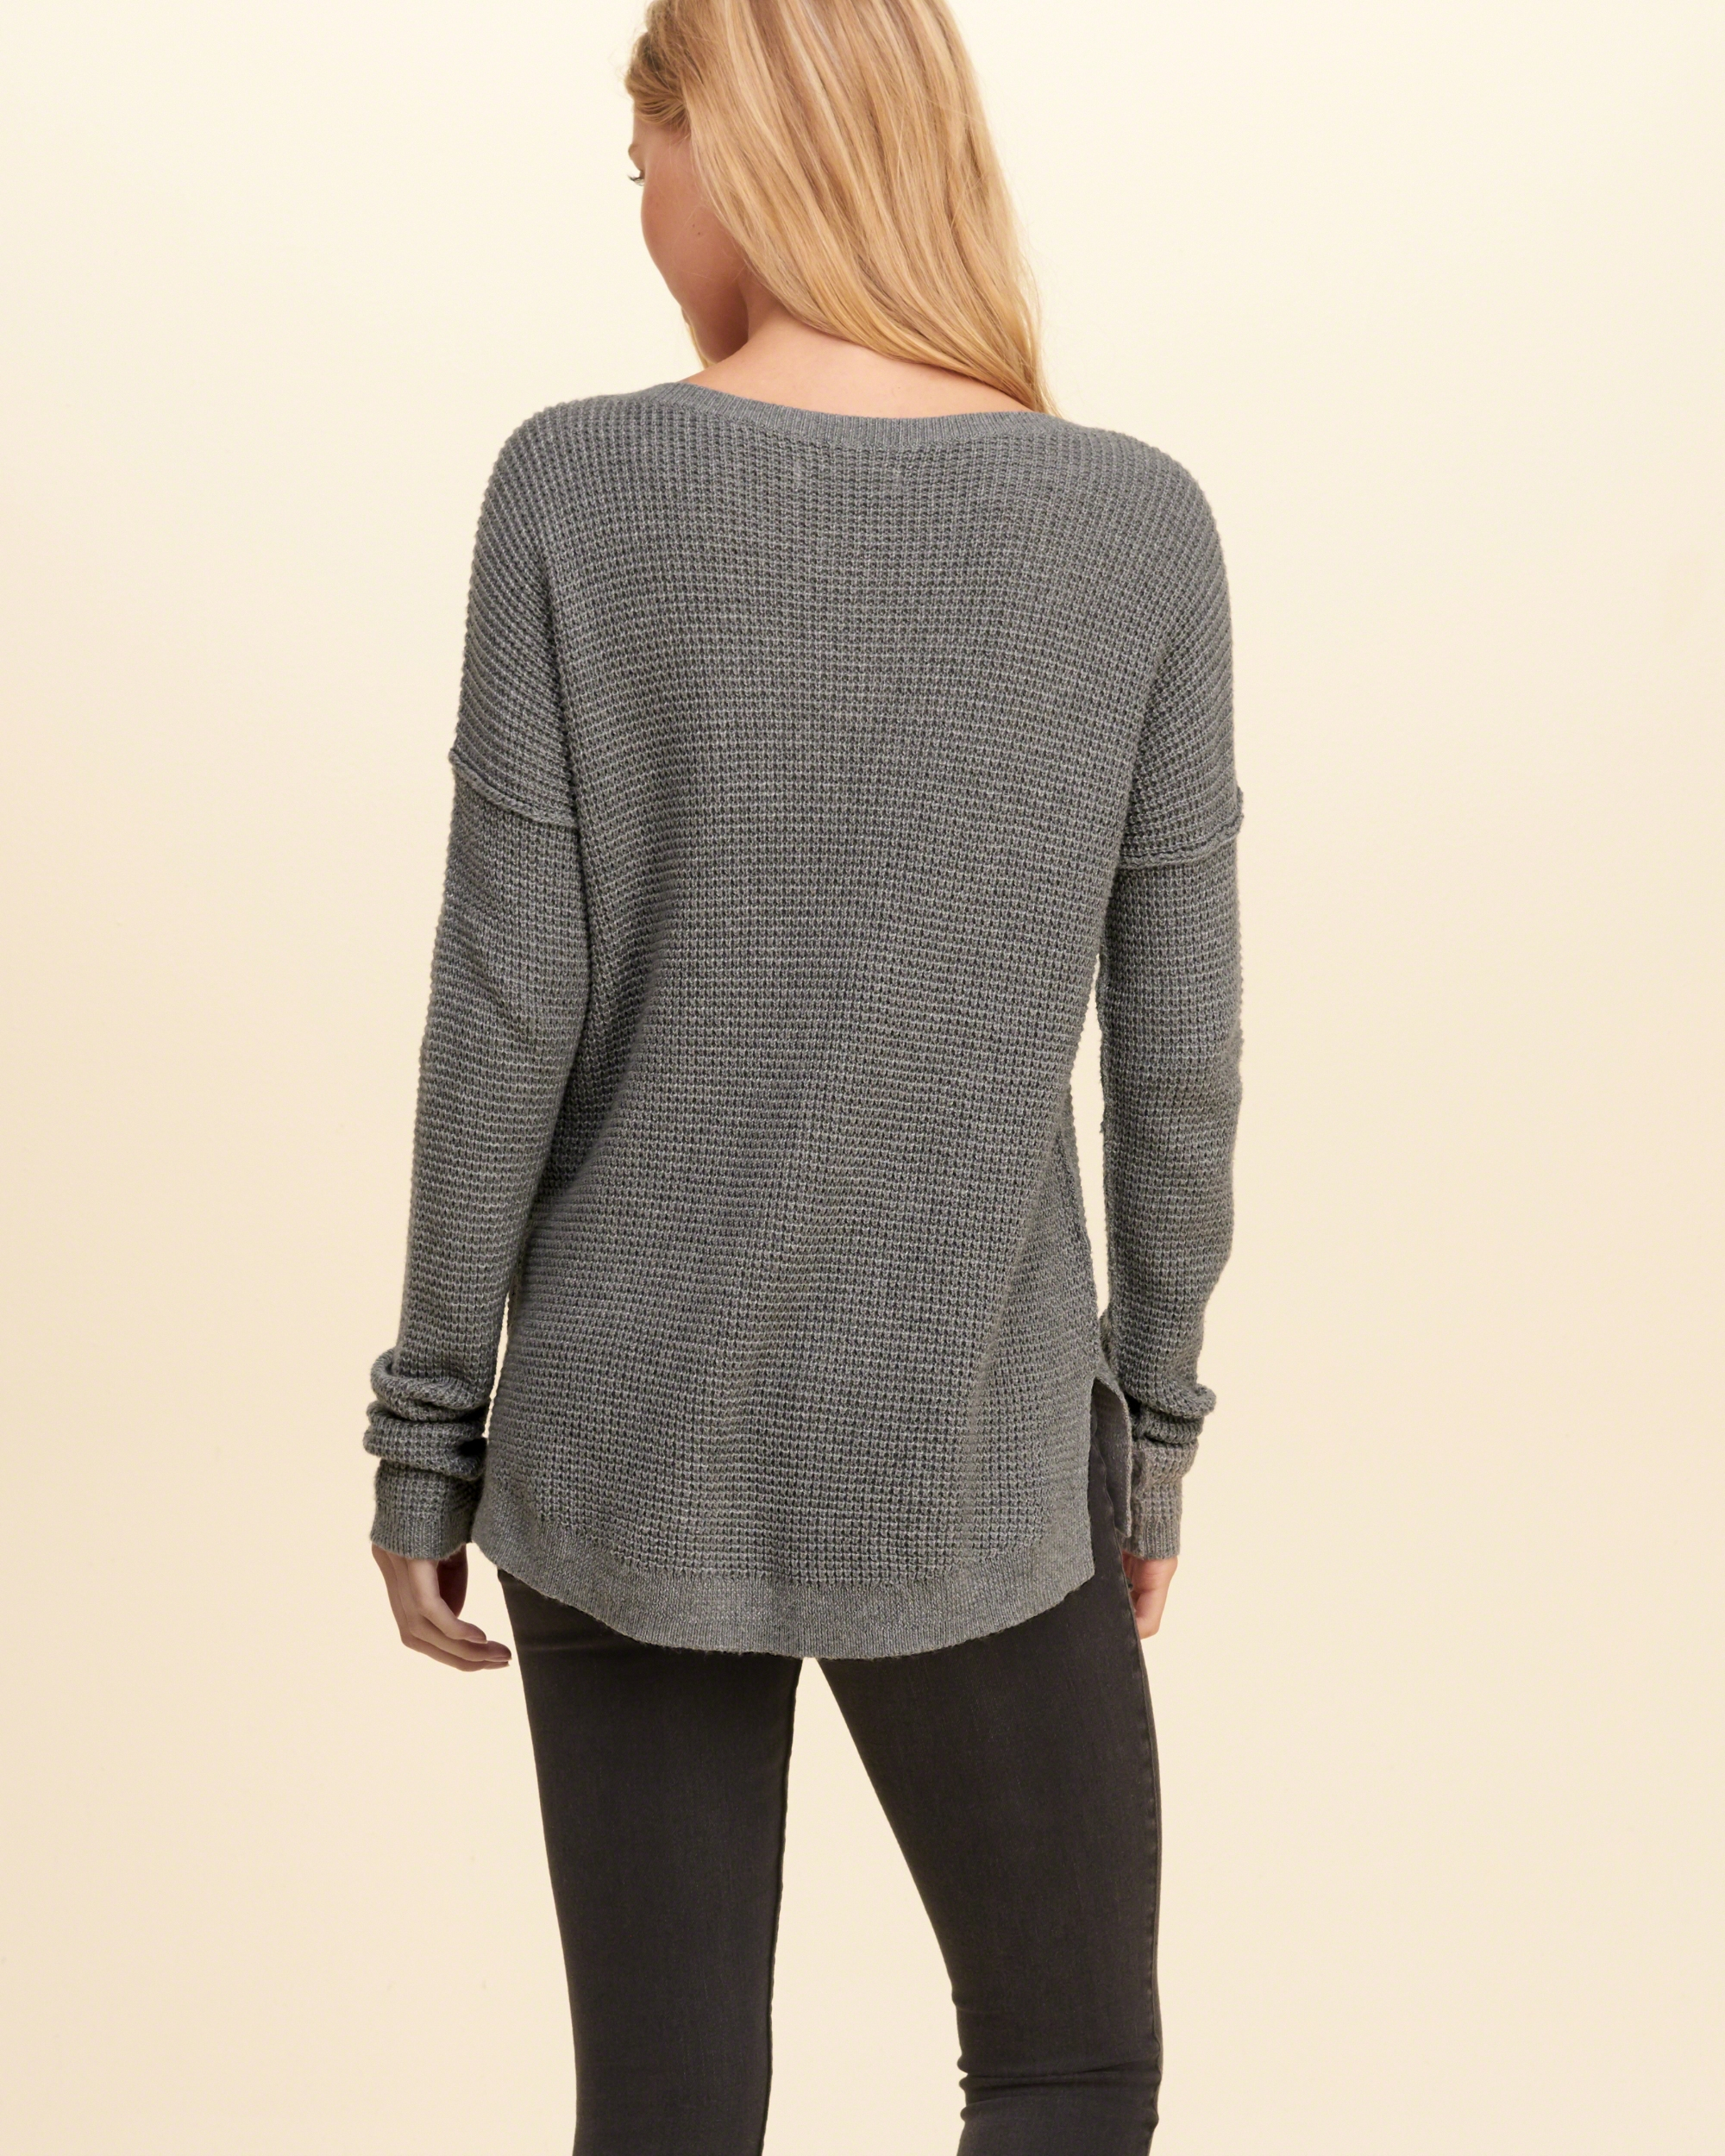 Hollister Iconi... Hollister Sweaters For Girls Grey